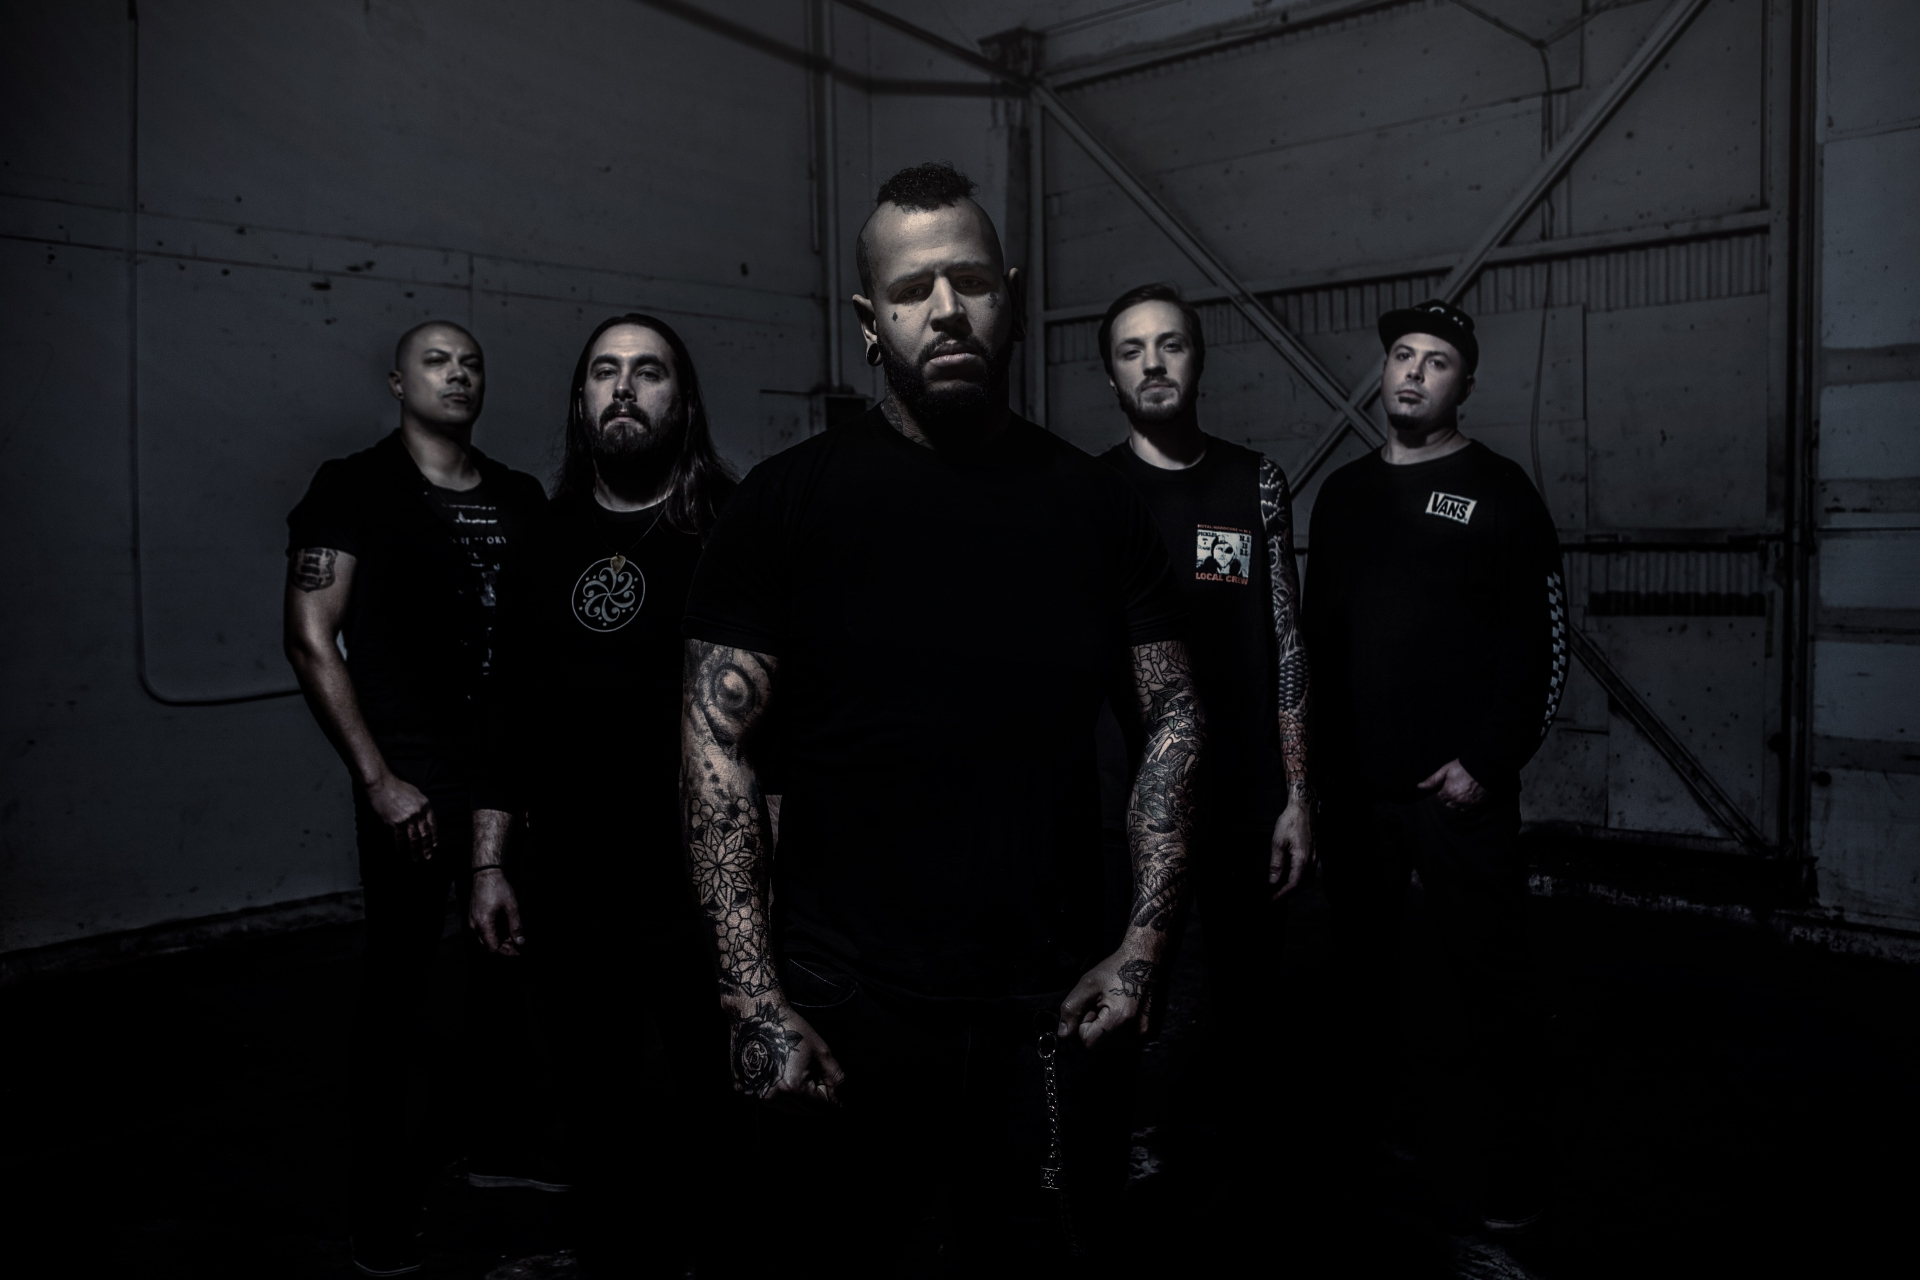 WATCH: Bad Wolves' cover of The Cranberries' Zombie is a global